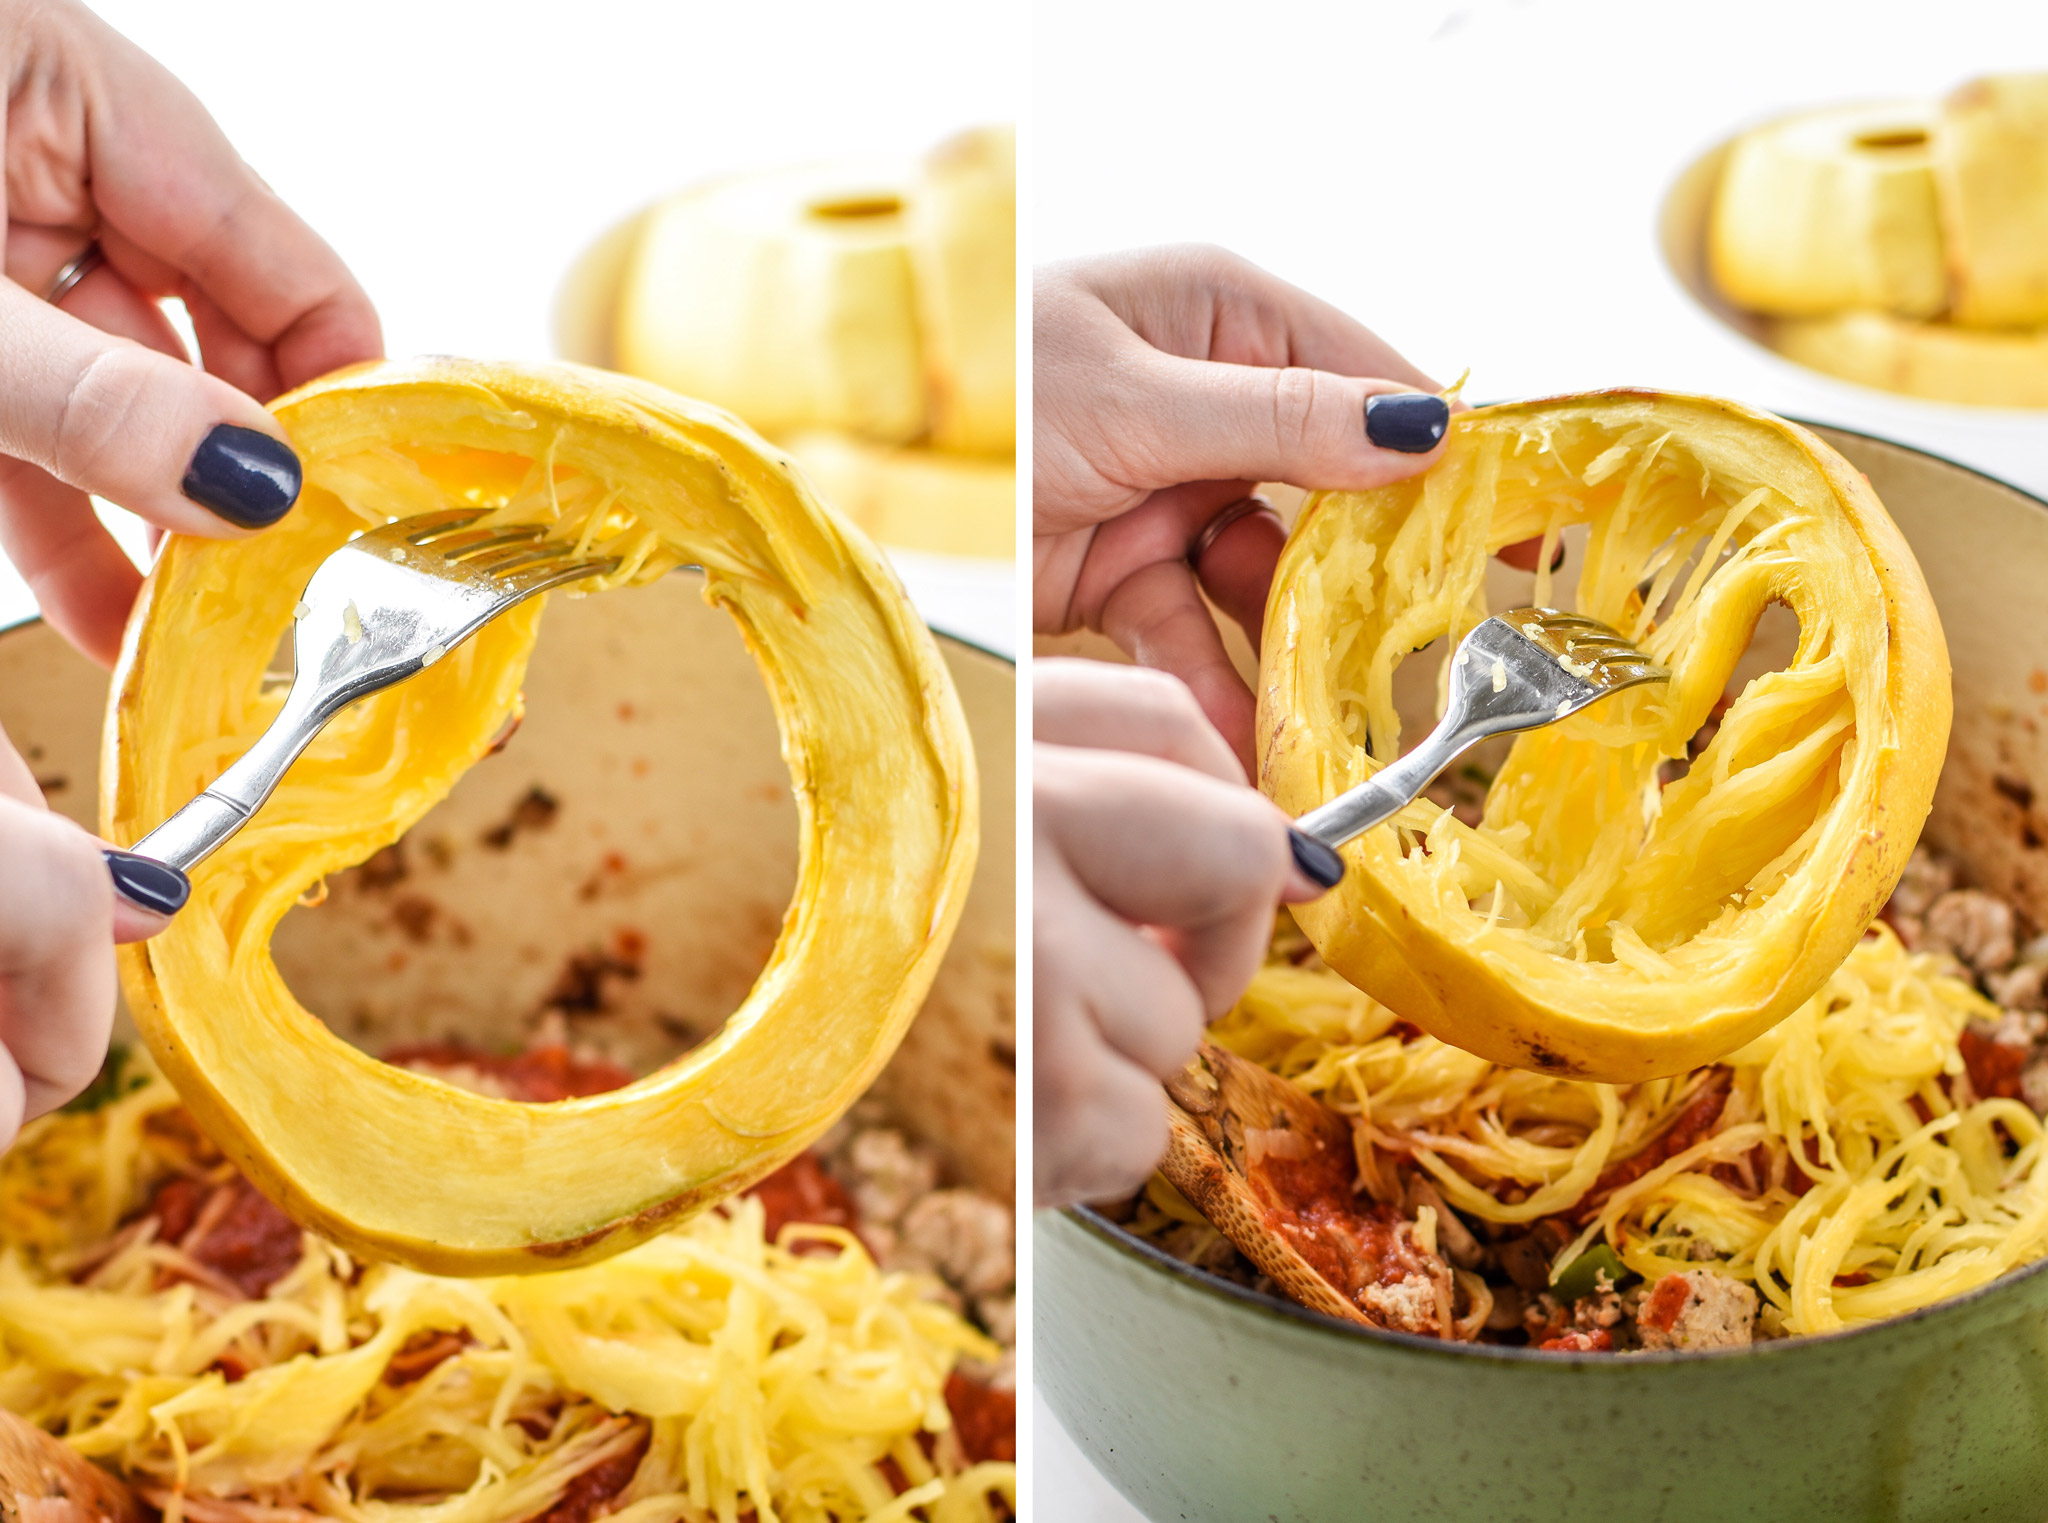 Using a fork to pull the squash noodles from the skin for the Low carb Spaghetti Squash Spaghetti Bake